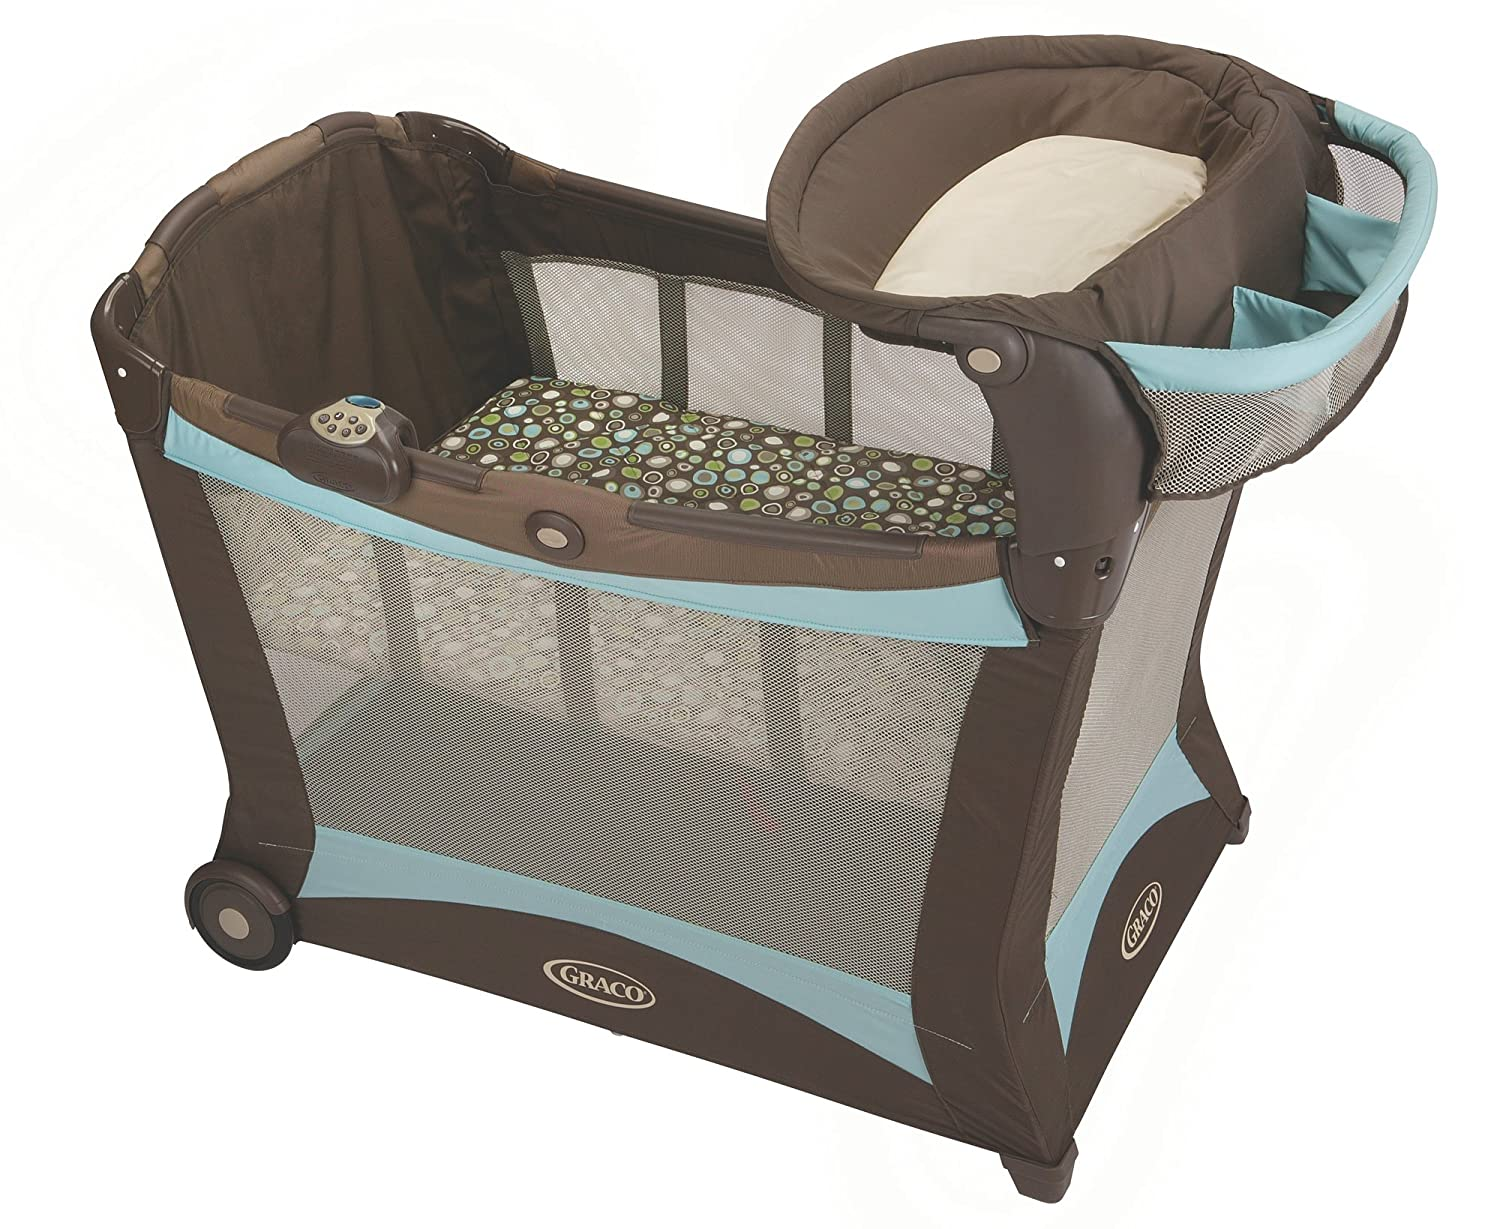 e8a7a801c Pack n Play Modern Playard with Toy Gym - Shout: Amazon.ca: Baby